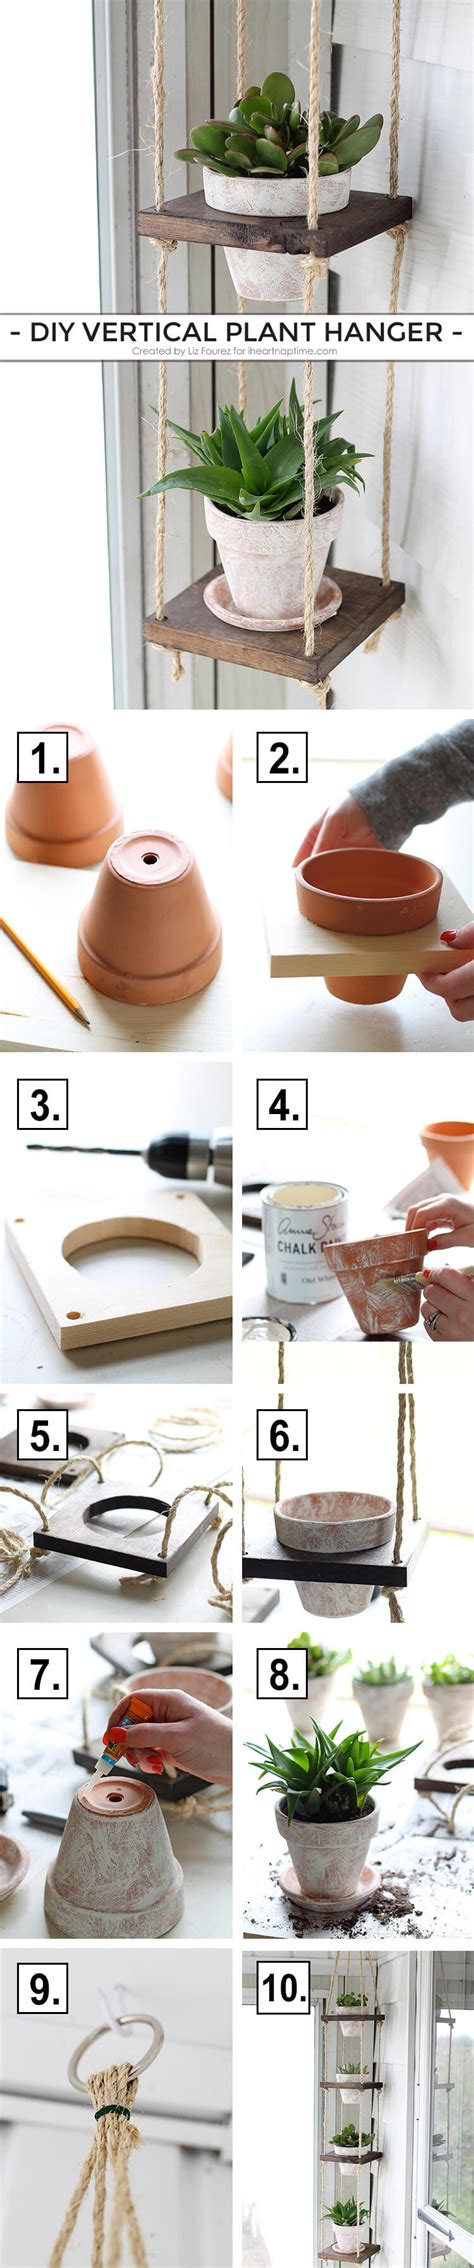 diy projects weekend 35 best weekend diy home decor projects ideas and